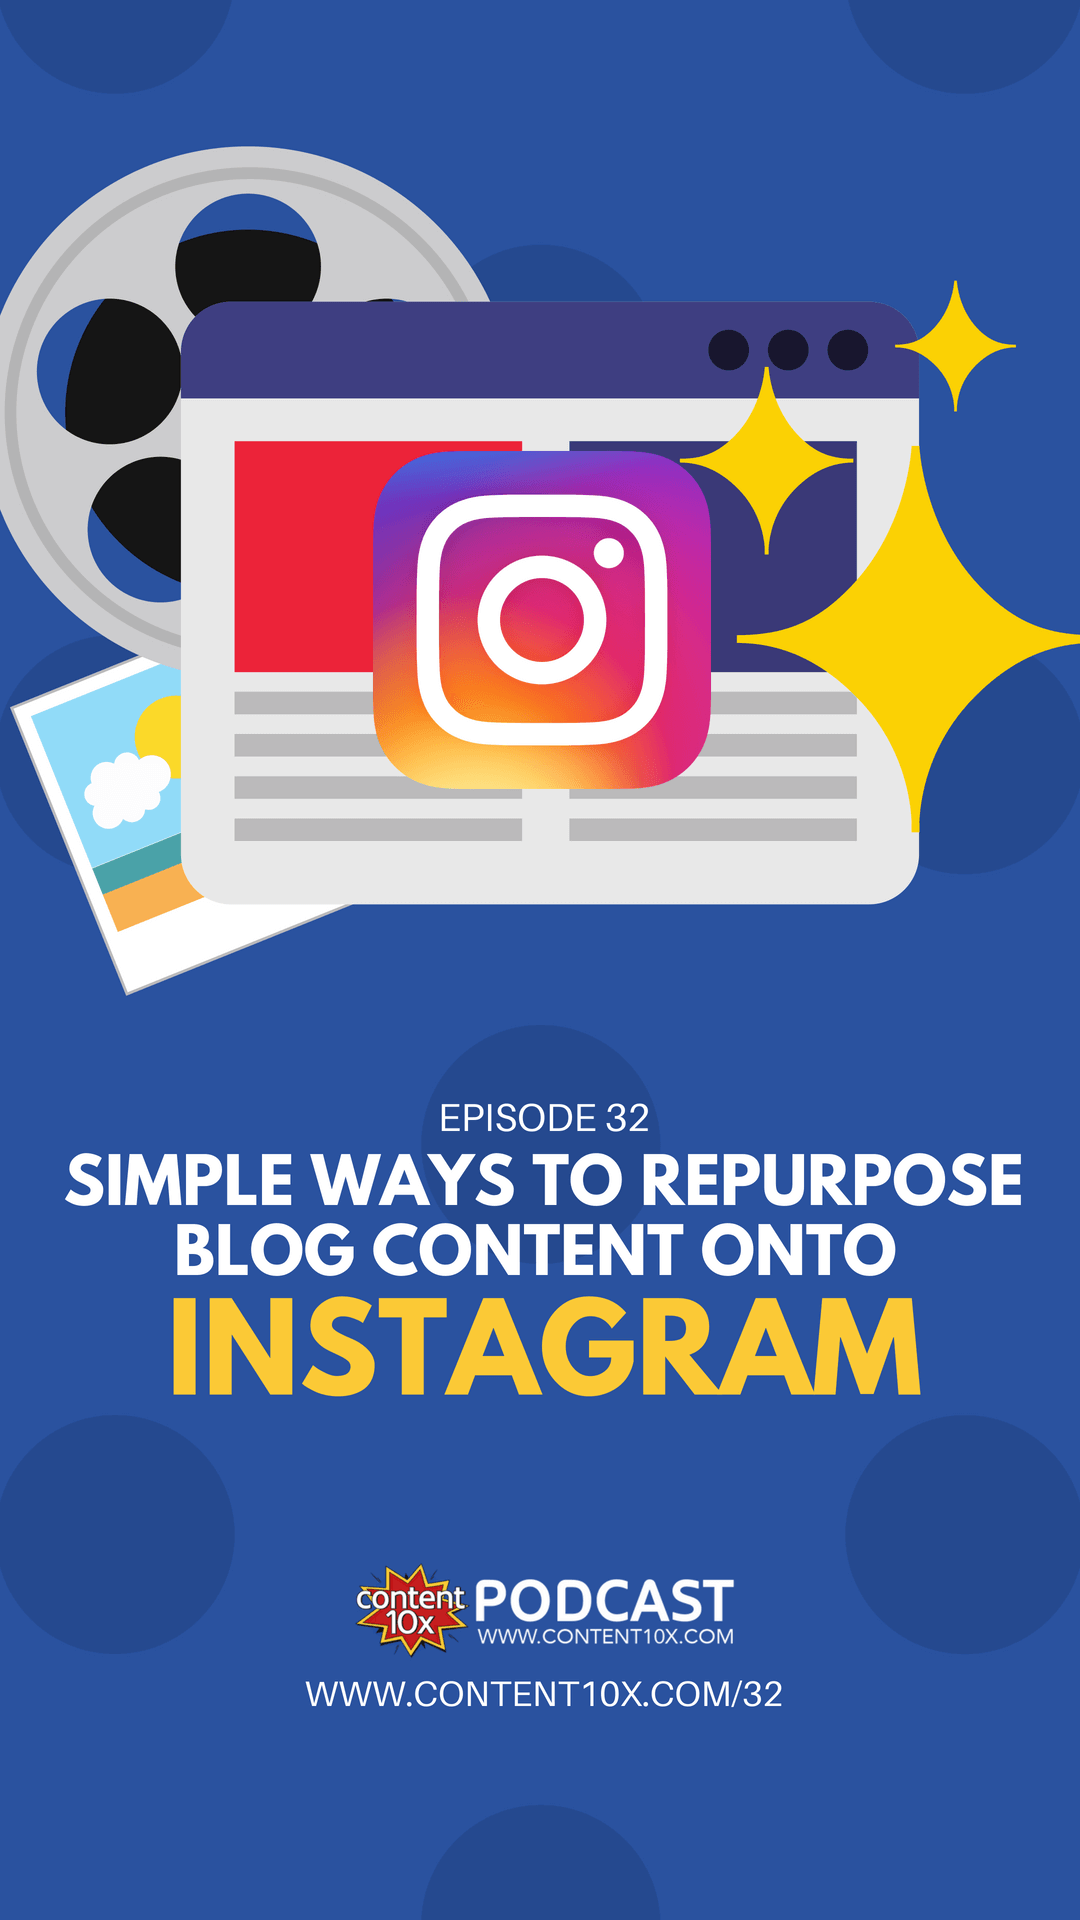 Simple Ways to Repurpose Blog Content onto Instagram